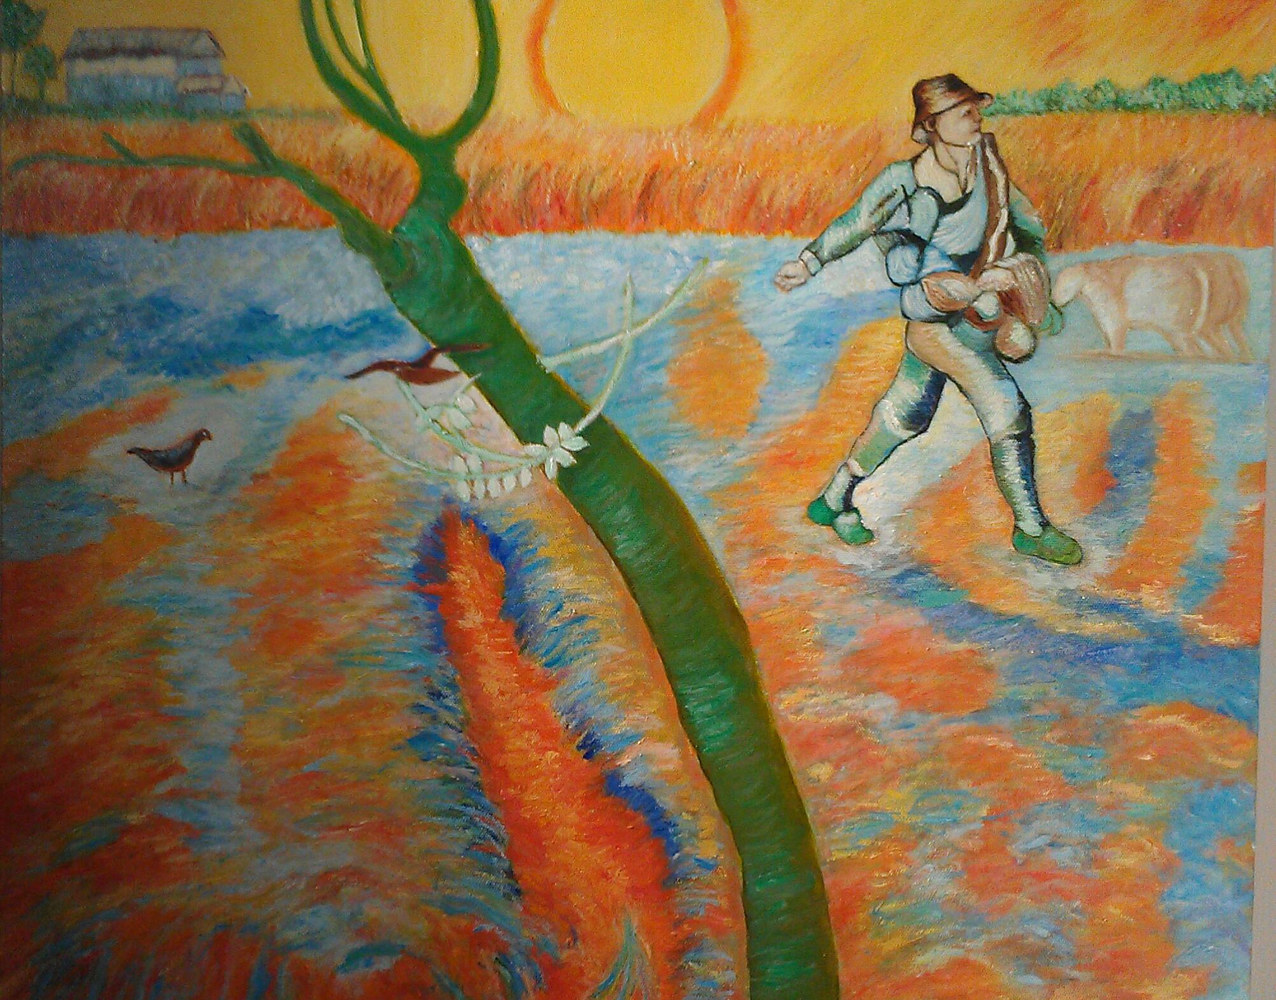 Oil painting The Sower (after Van Gogh), 2014 by Gwenda Branjerdporn